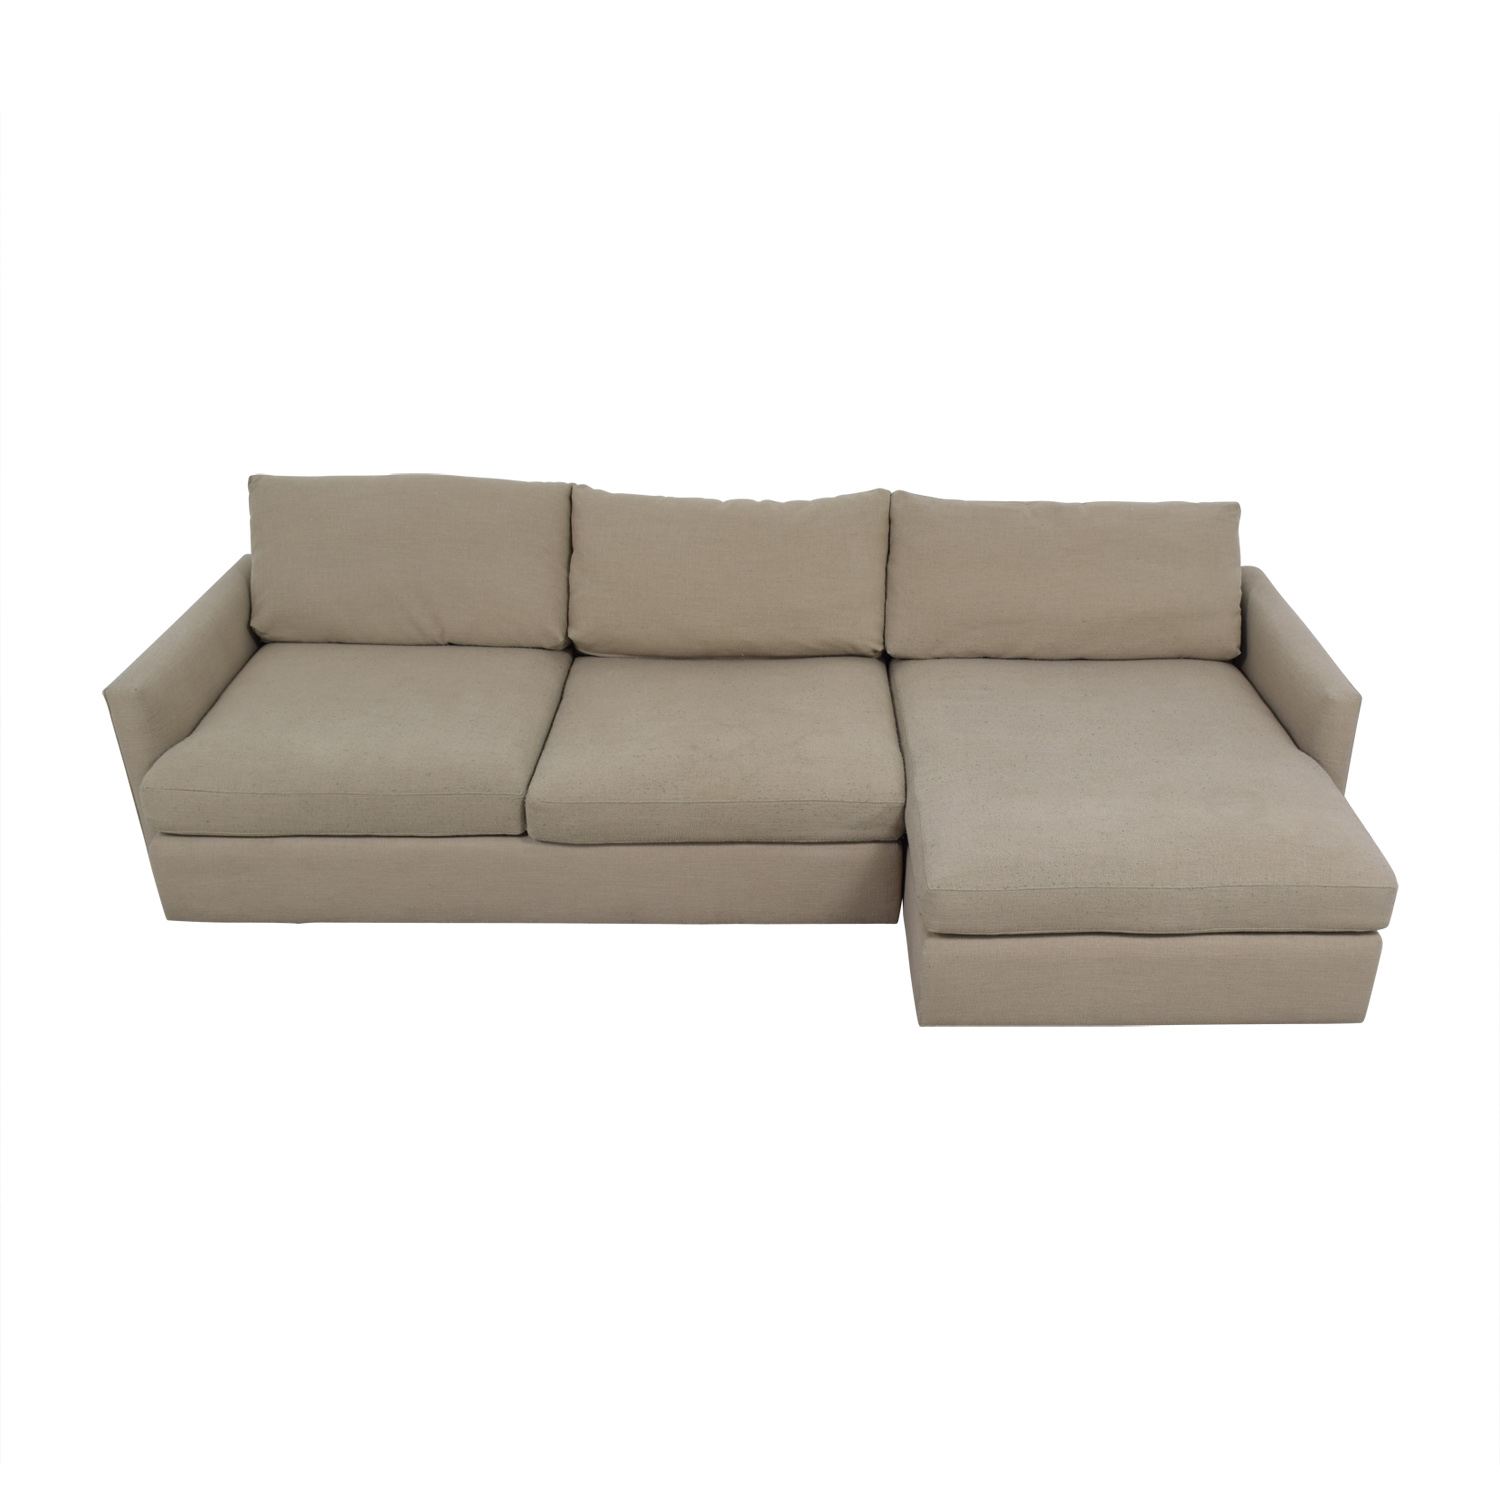 Crate & Barrel Lounge II Beige Sectional / Sofas